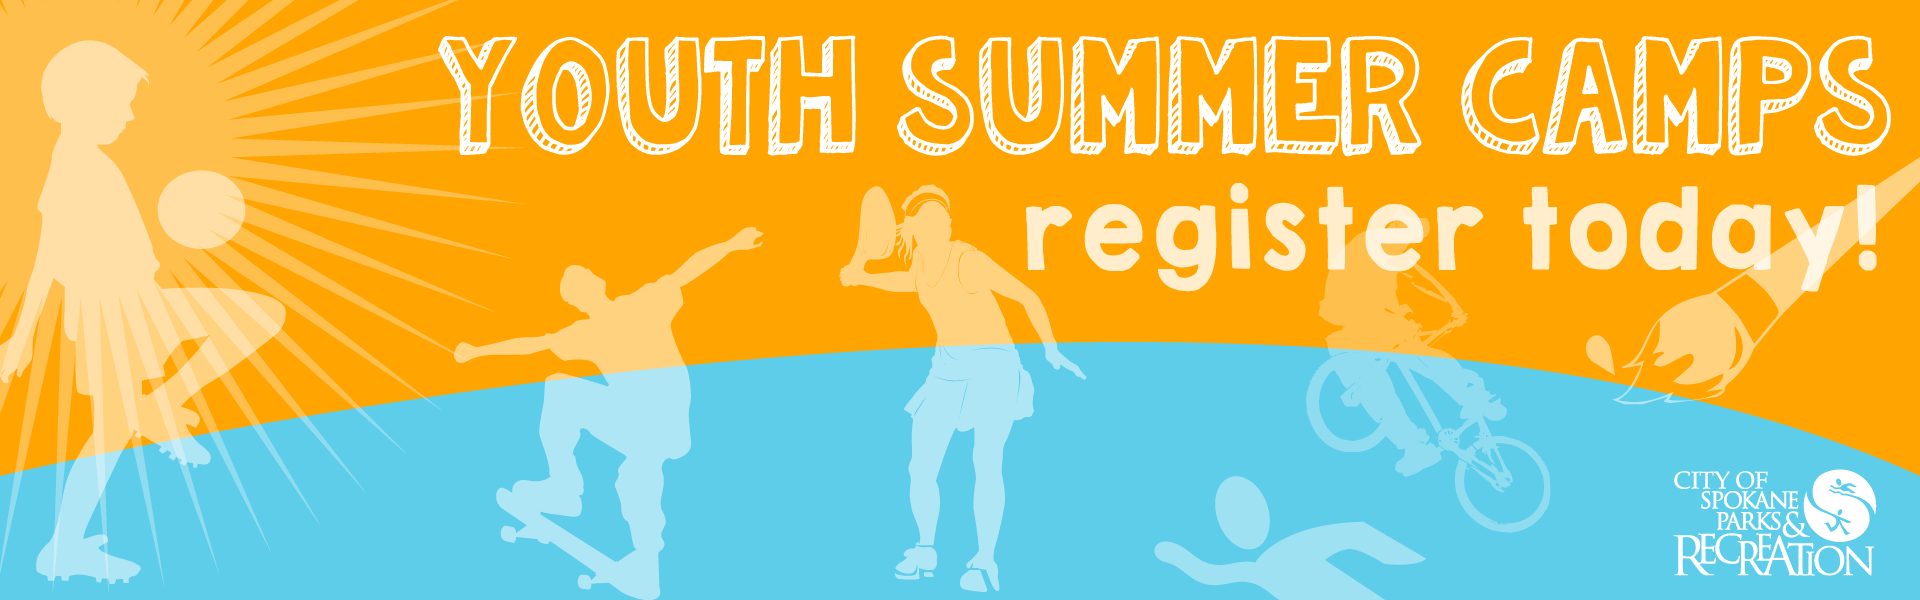 Youth Summer Camps 2015